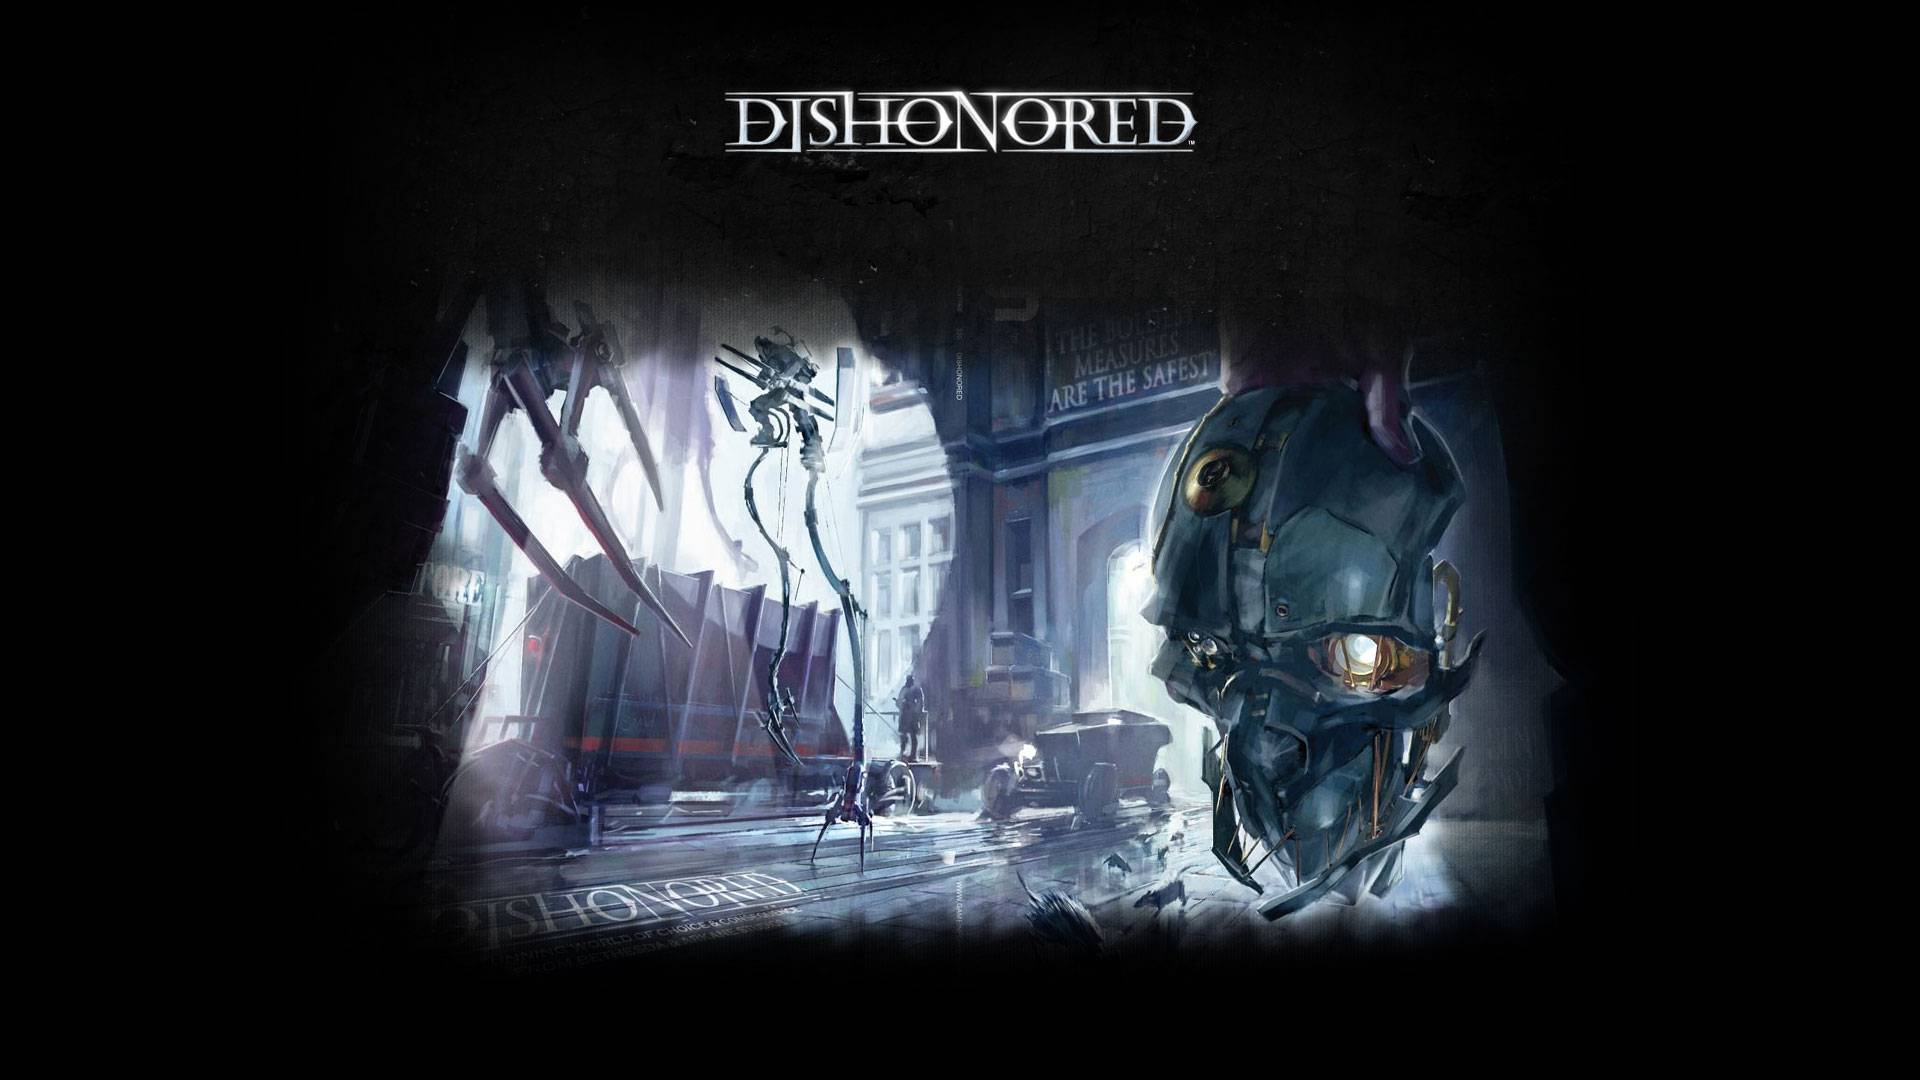 dishonored-wallpaper-hd-pc